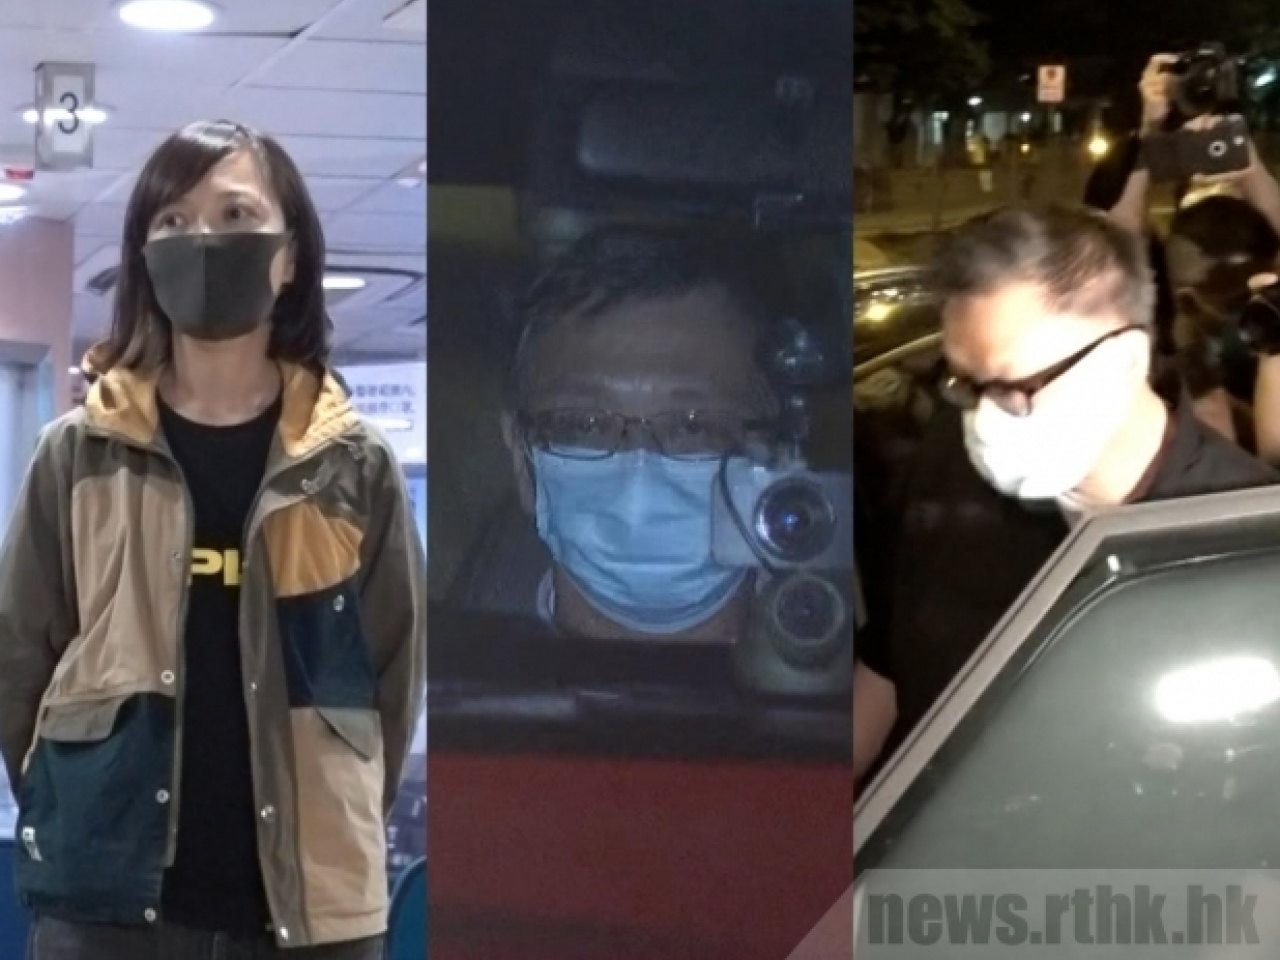 Associate publisher Chan Pui-man, chief operating officer Chow Tat-kuen and chief executive editor Cheung Chi-wai leave the police station. Photo: RTHK